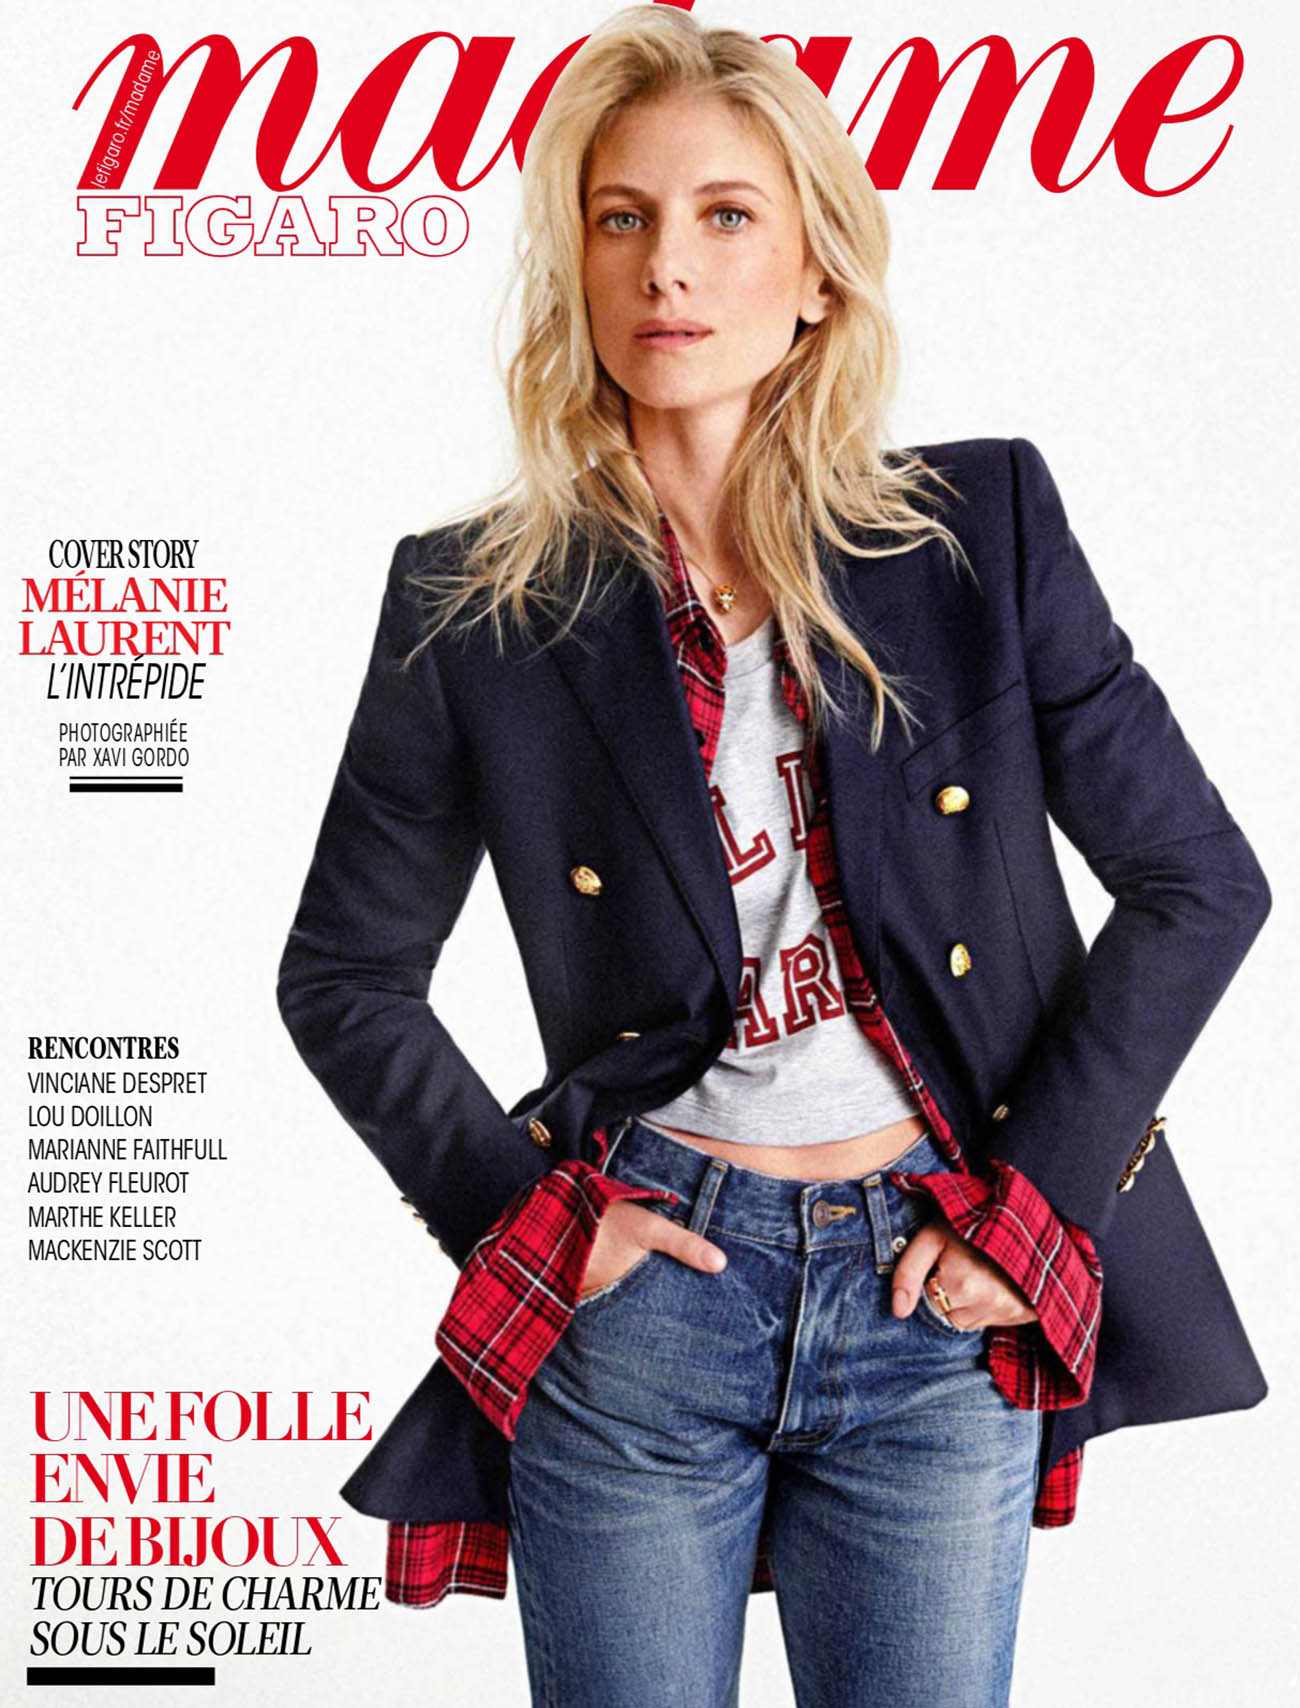 Mélanie Laurent covers Madame Figaro April 30th, 2021 by Xavi Gordo